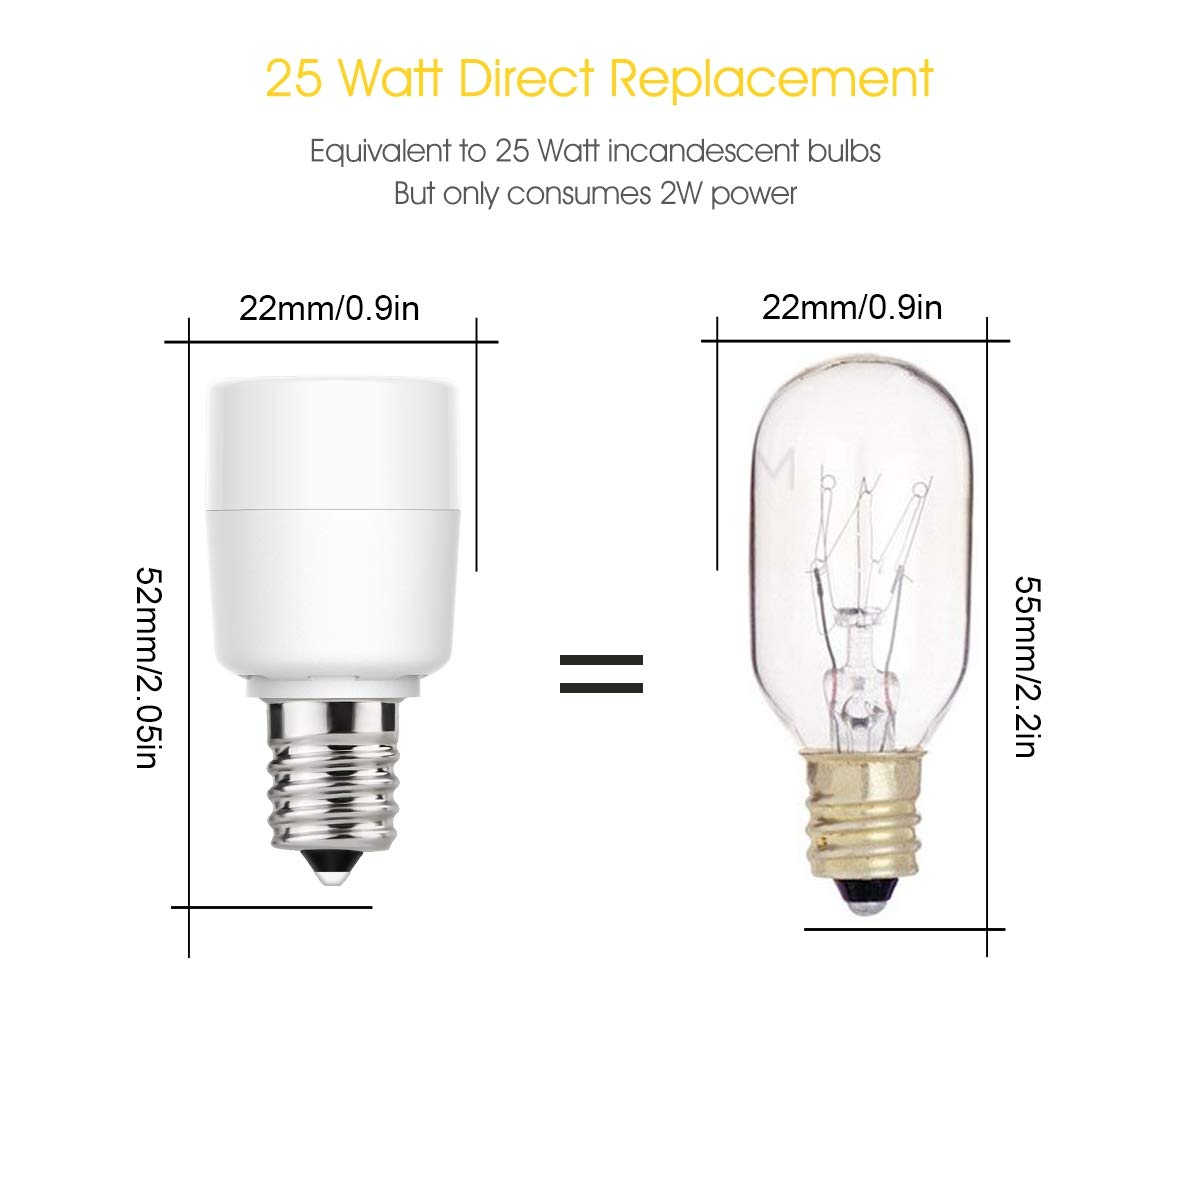 25W Equivalent Light Bulb Non Dimmable Pack of 6 LEHASI E12 Candelabra Base 2W LED Bulb Bedroom Daylight White 5000K Mini LED Bulb Porch Home Lighting 200LM Lamp Light for Night Light